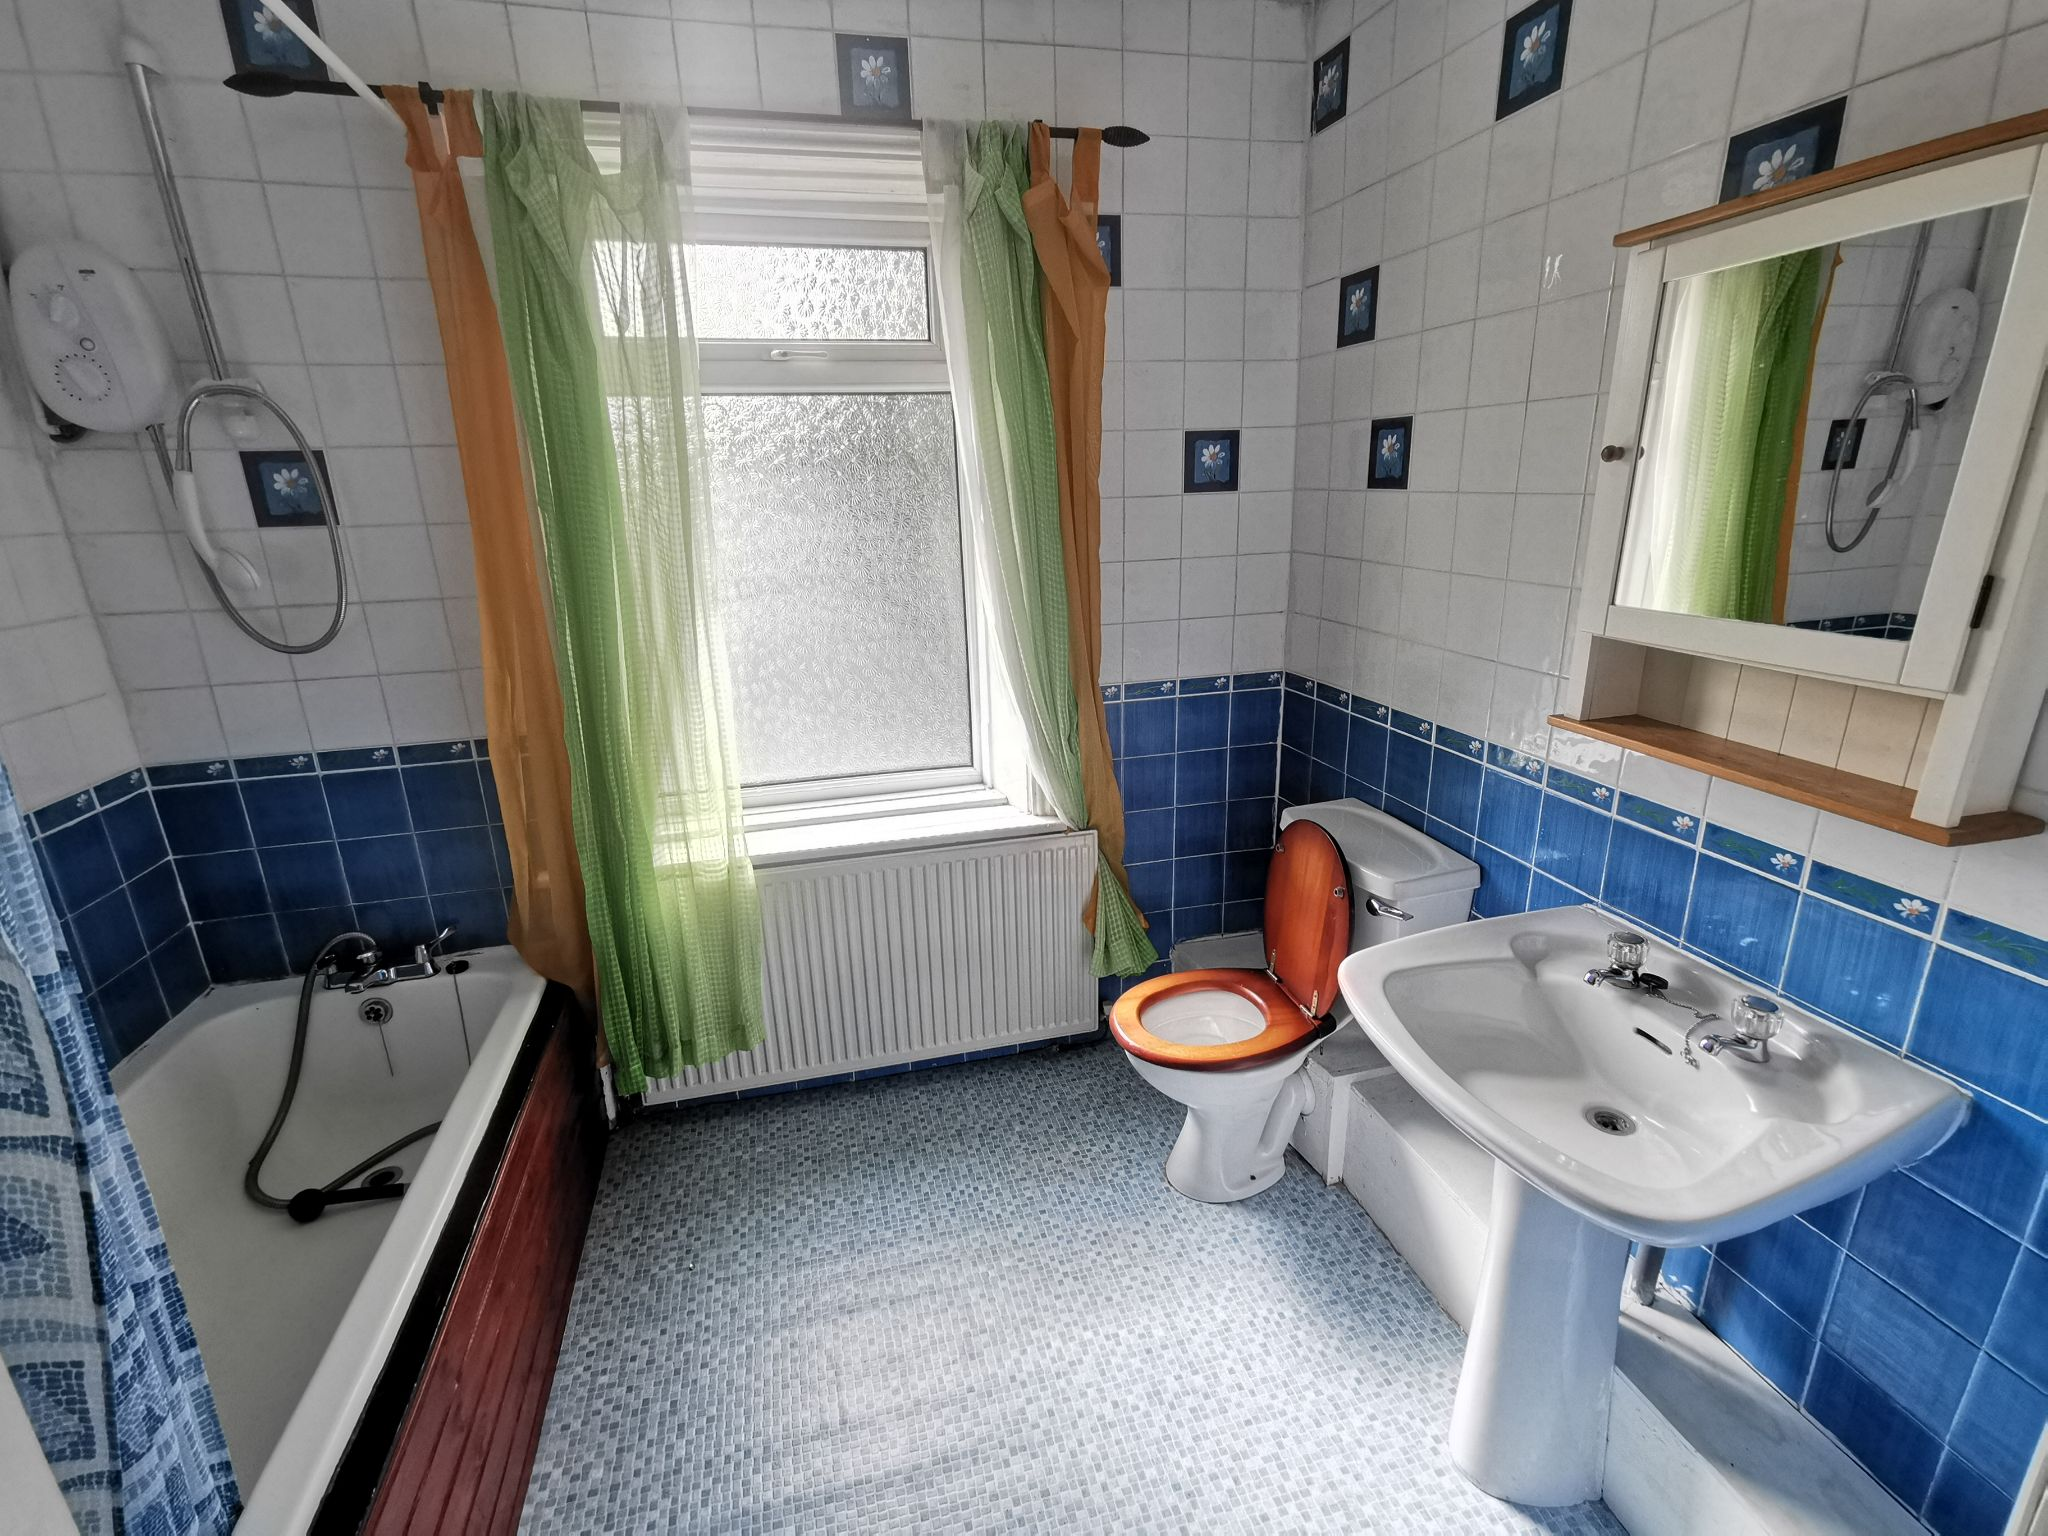 3 bedroom detached house For Sale in Bradford - Photograph 11.